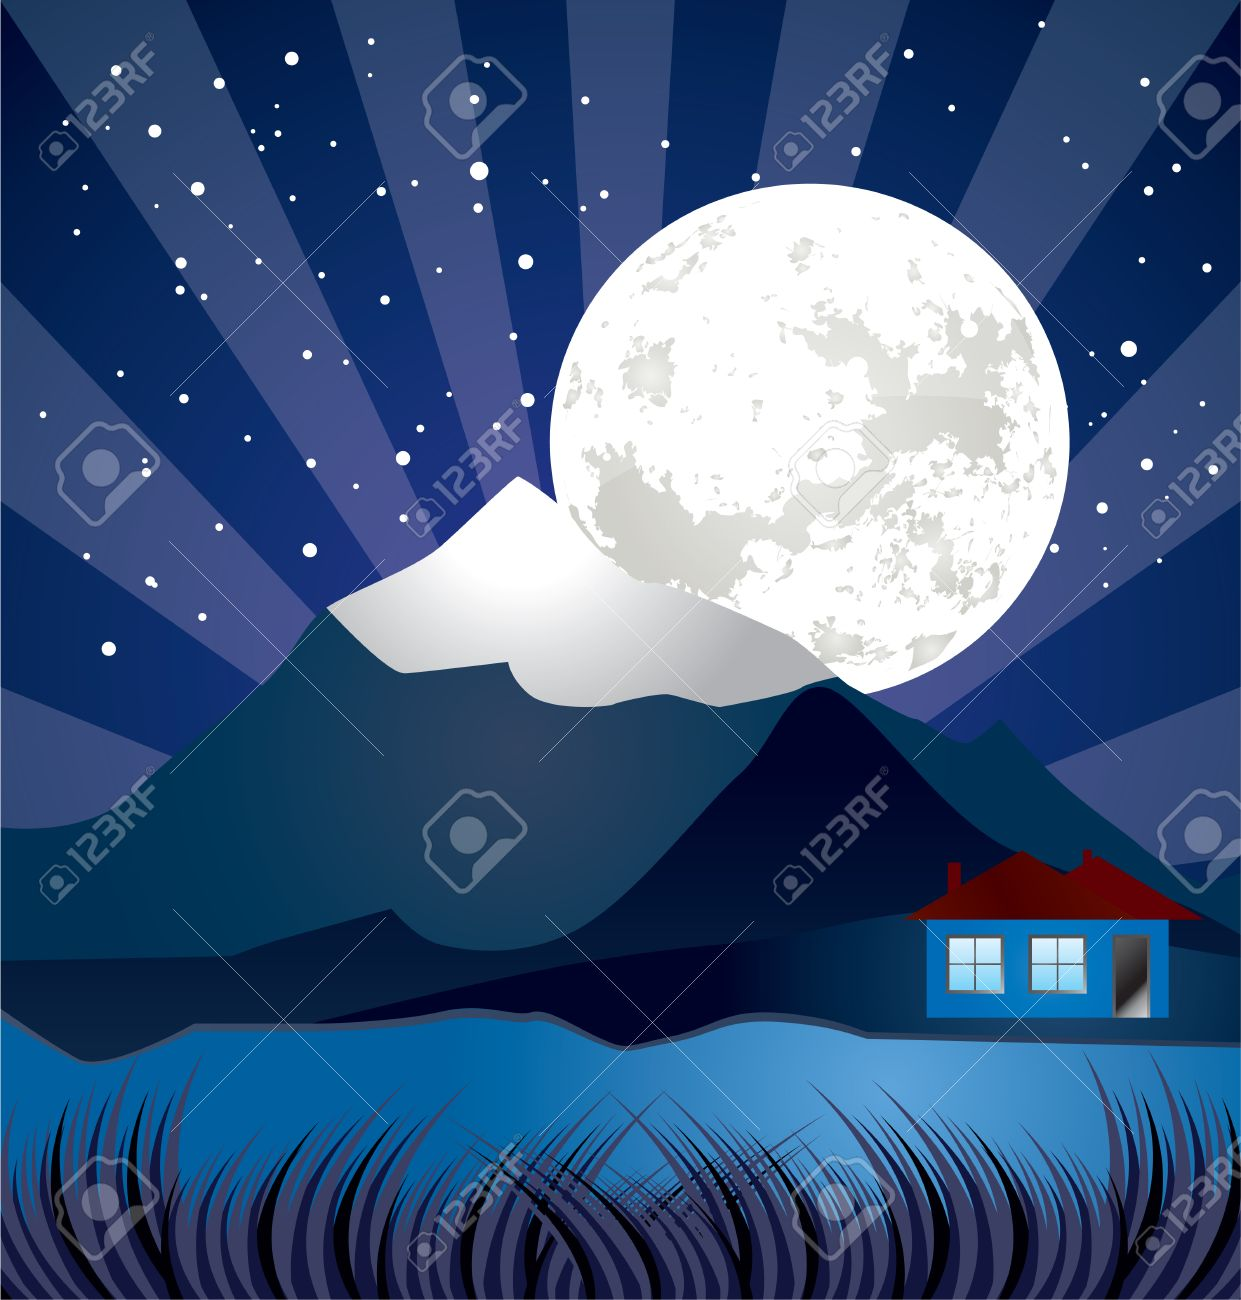 night landscape with river - vector, stars and moon illustration Stock Vector - 8946015